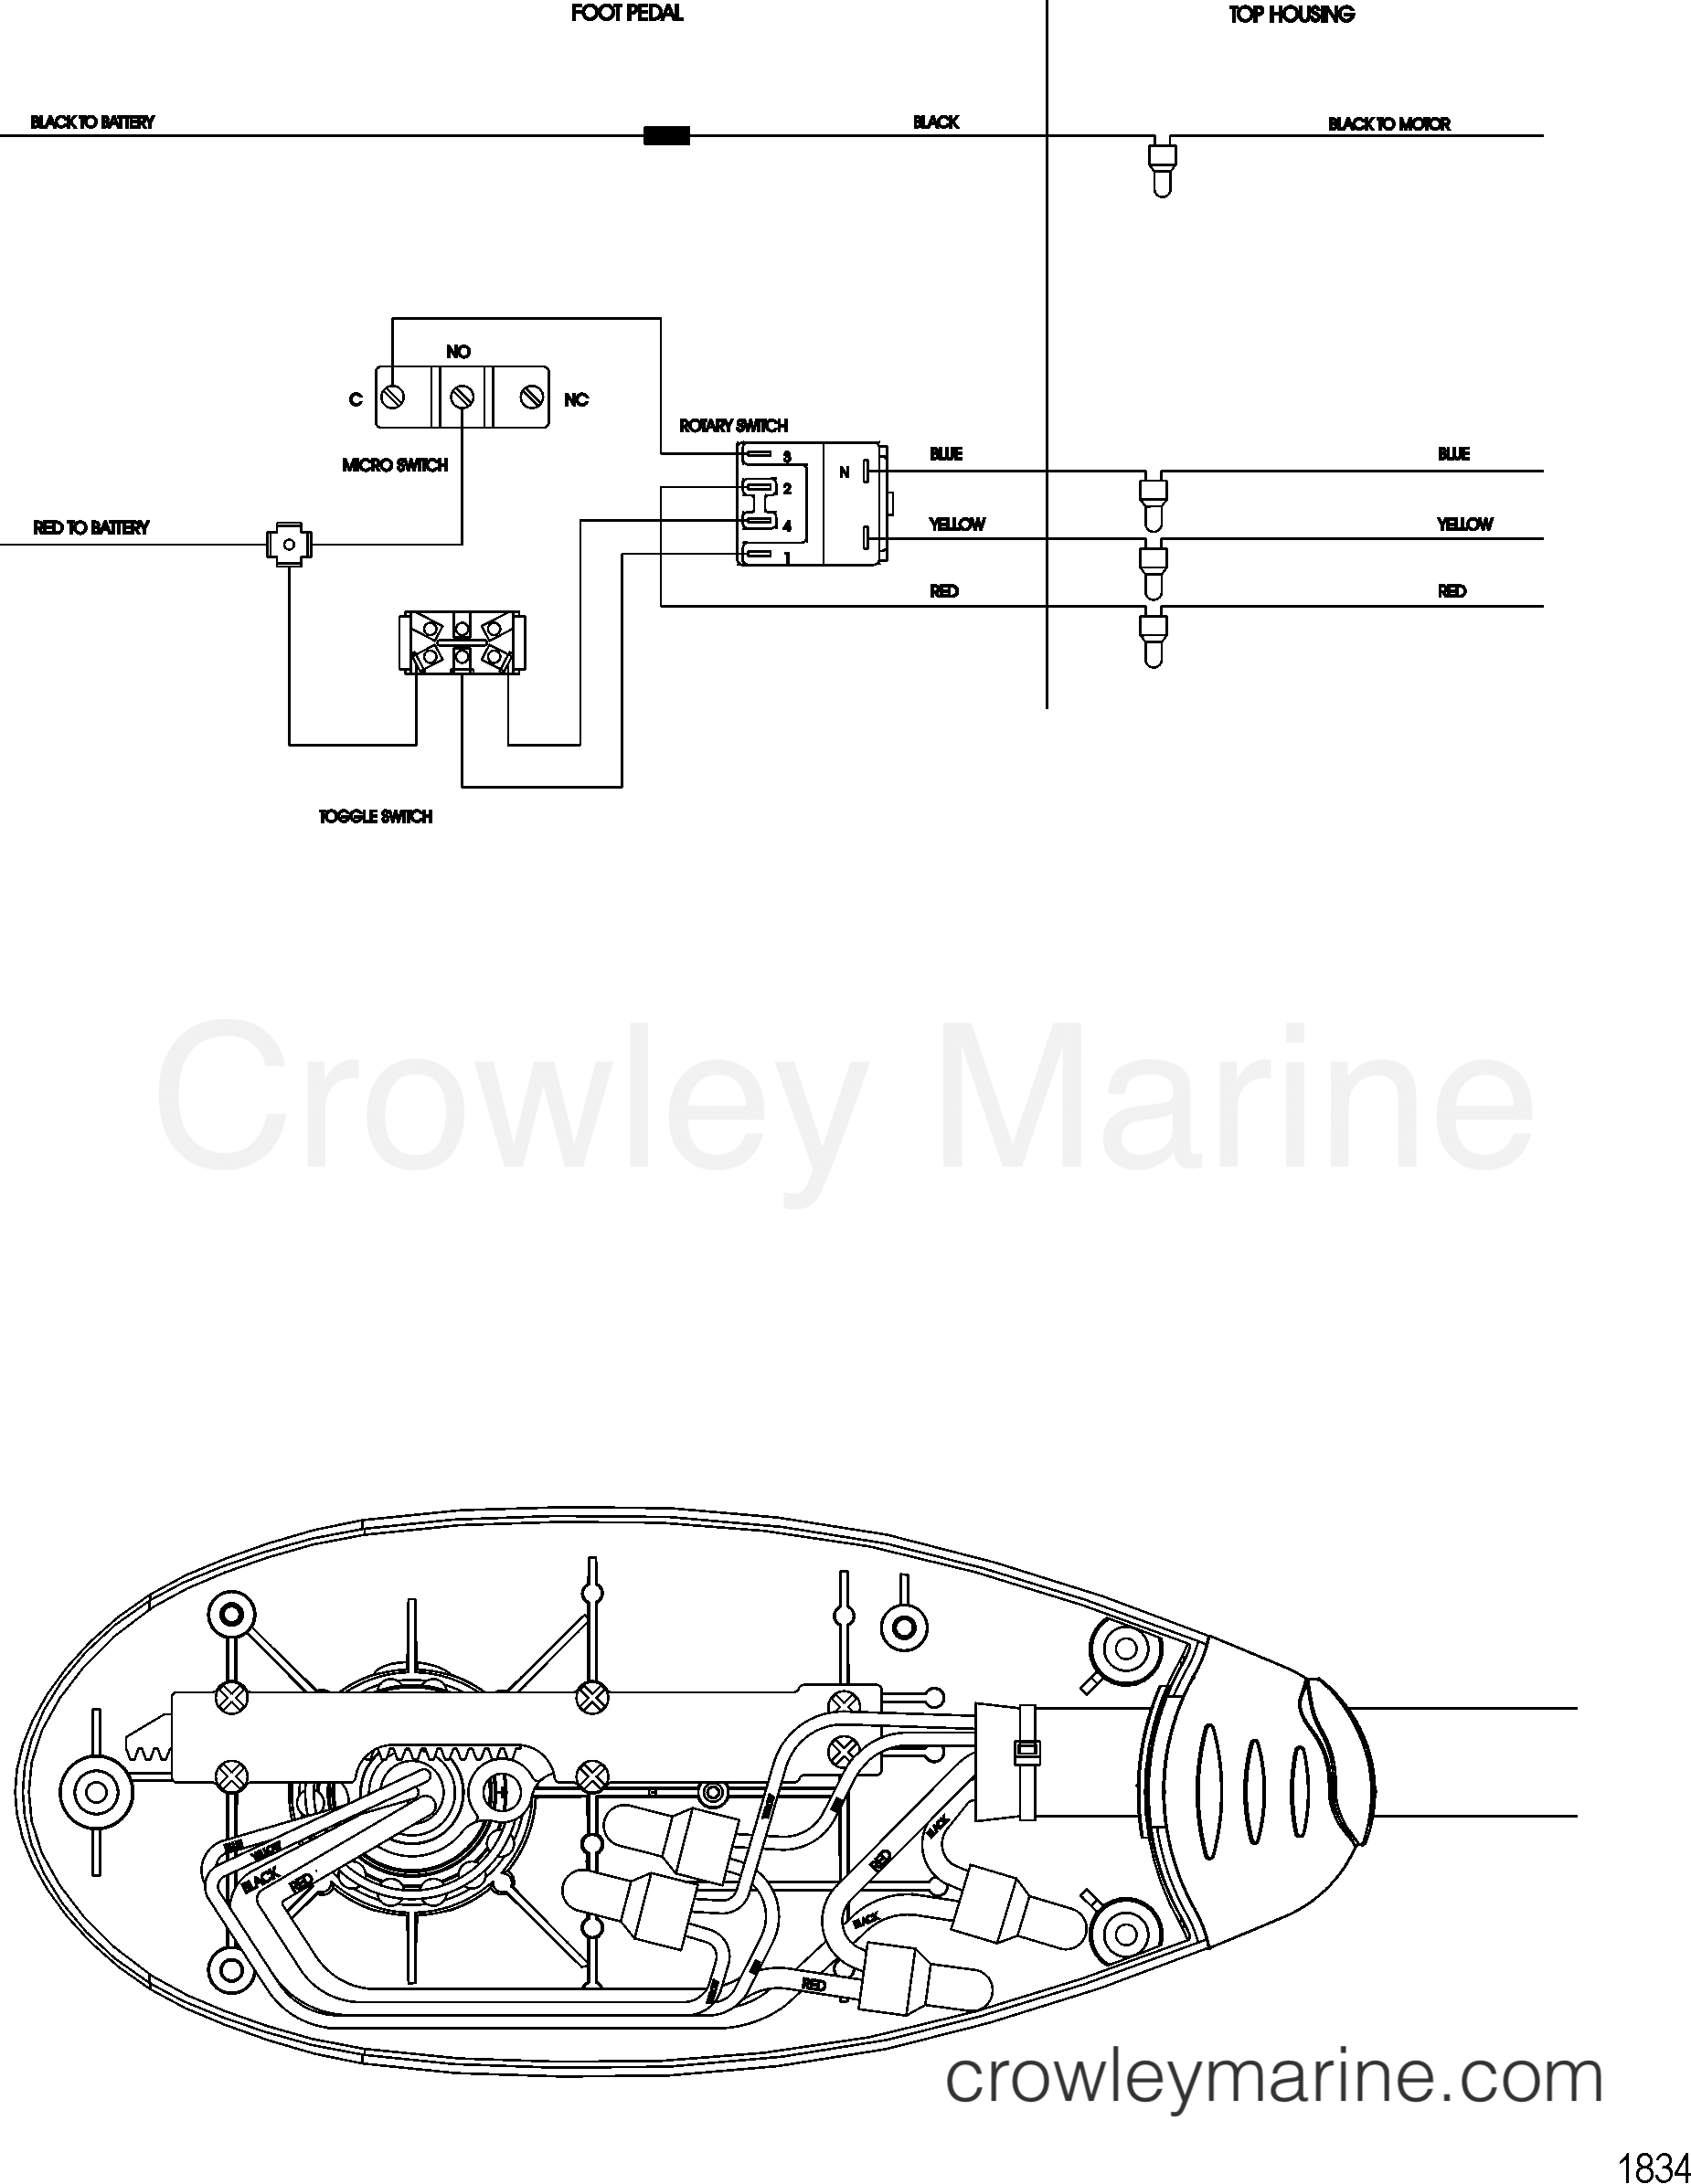 2008 MotorGuide 12V [MOTORGUIDE] - 92141001R - WIRE DIAGRAM(MODEL FW40FB) section